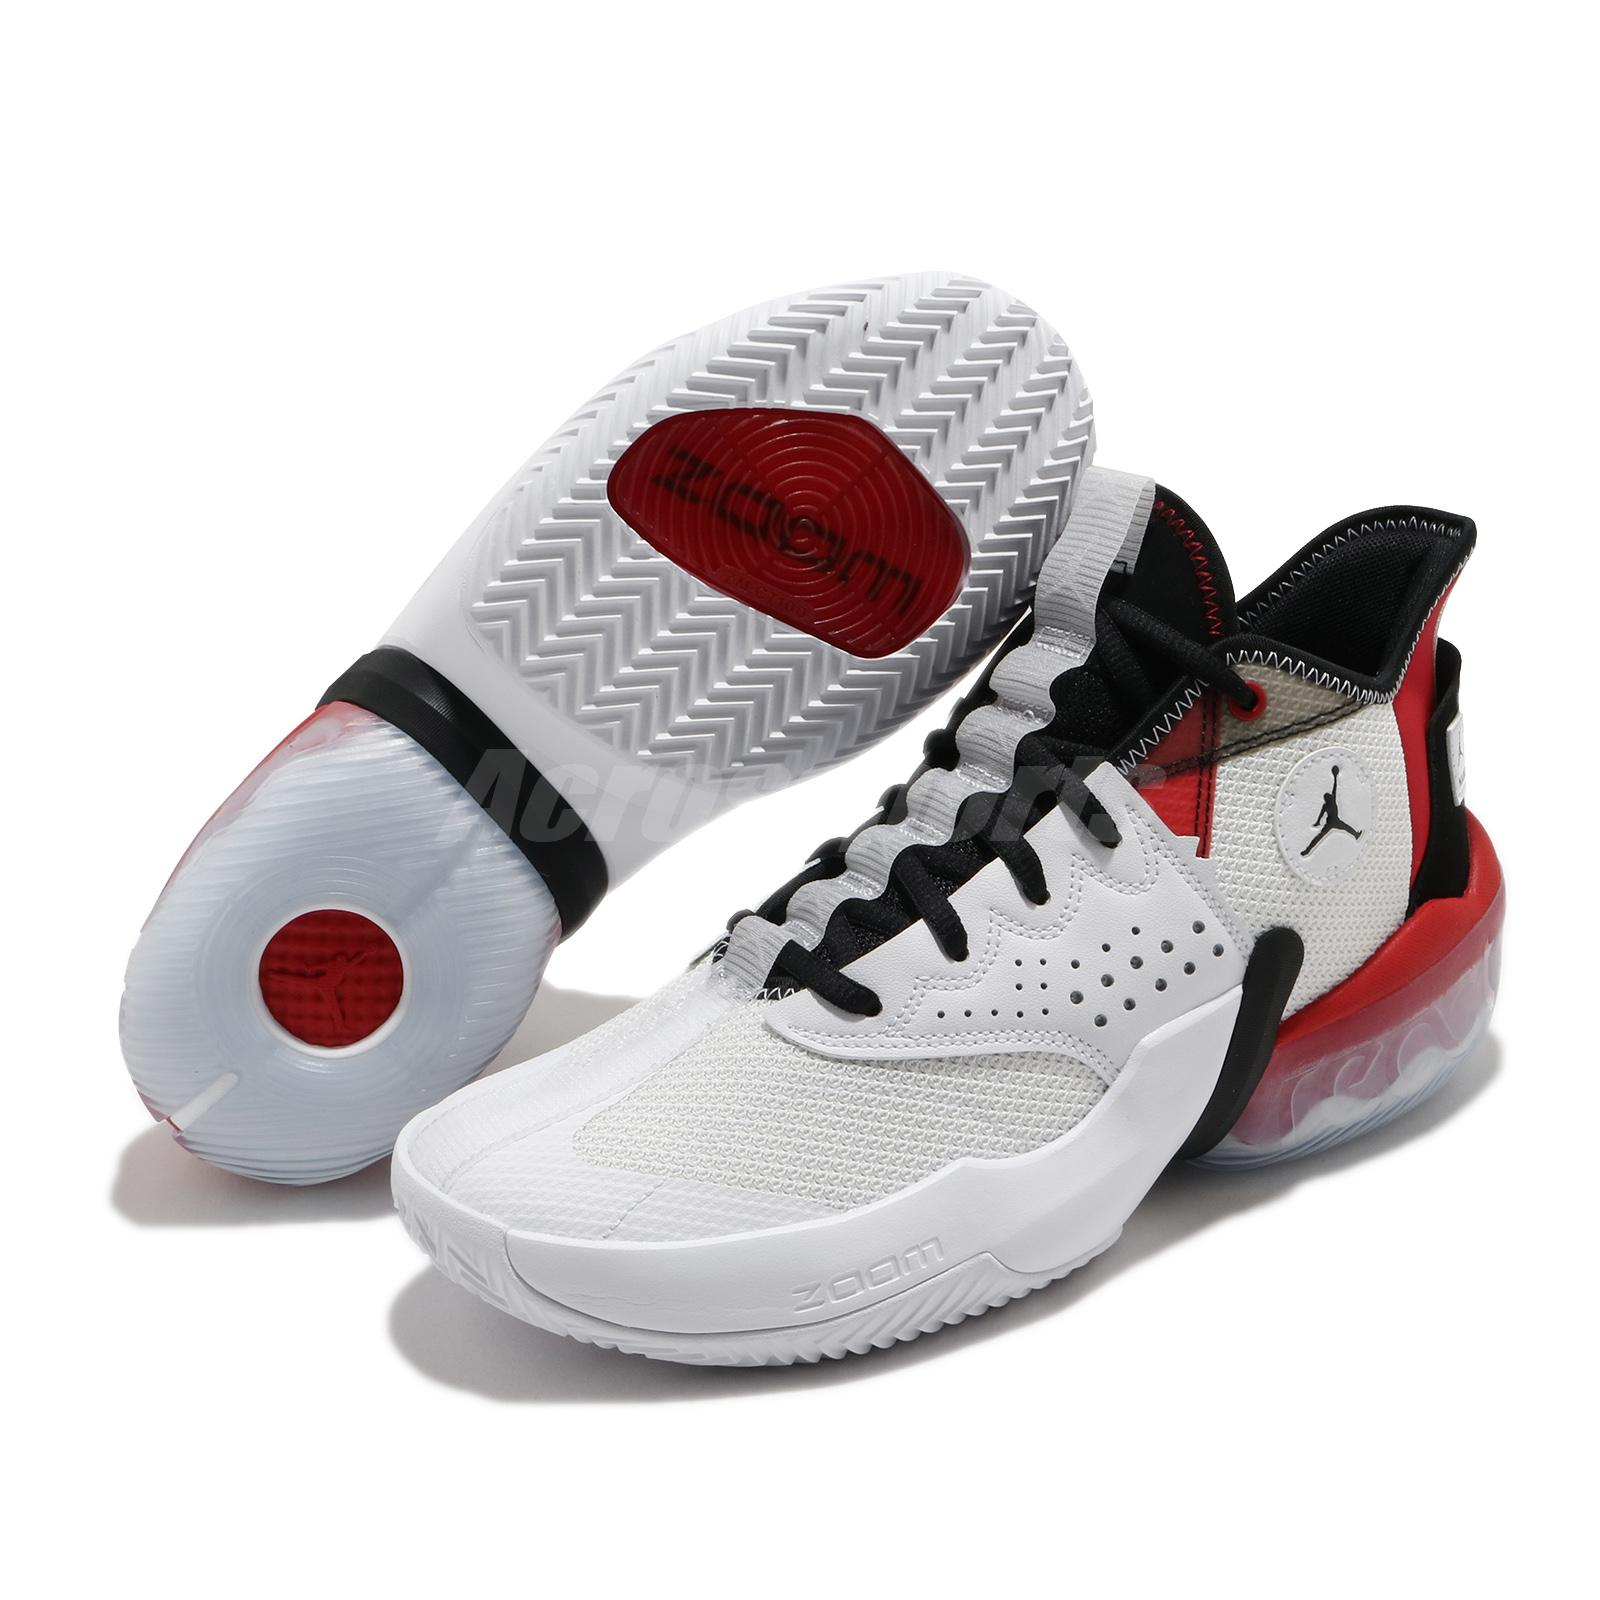 chaussures basket nike homme made turk